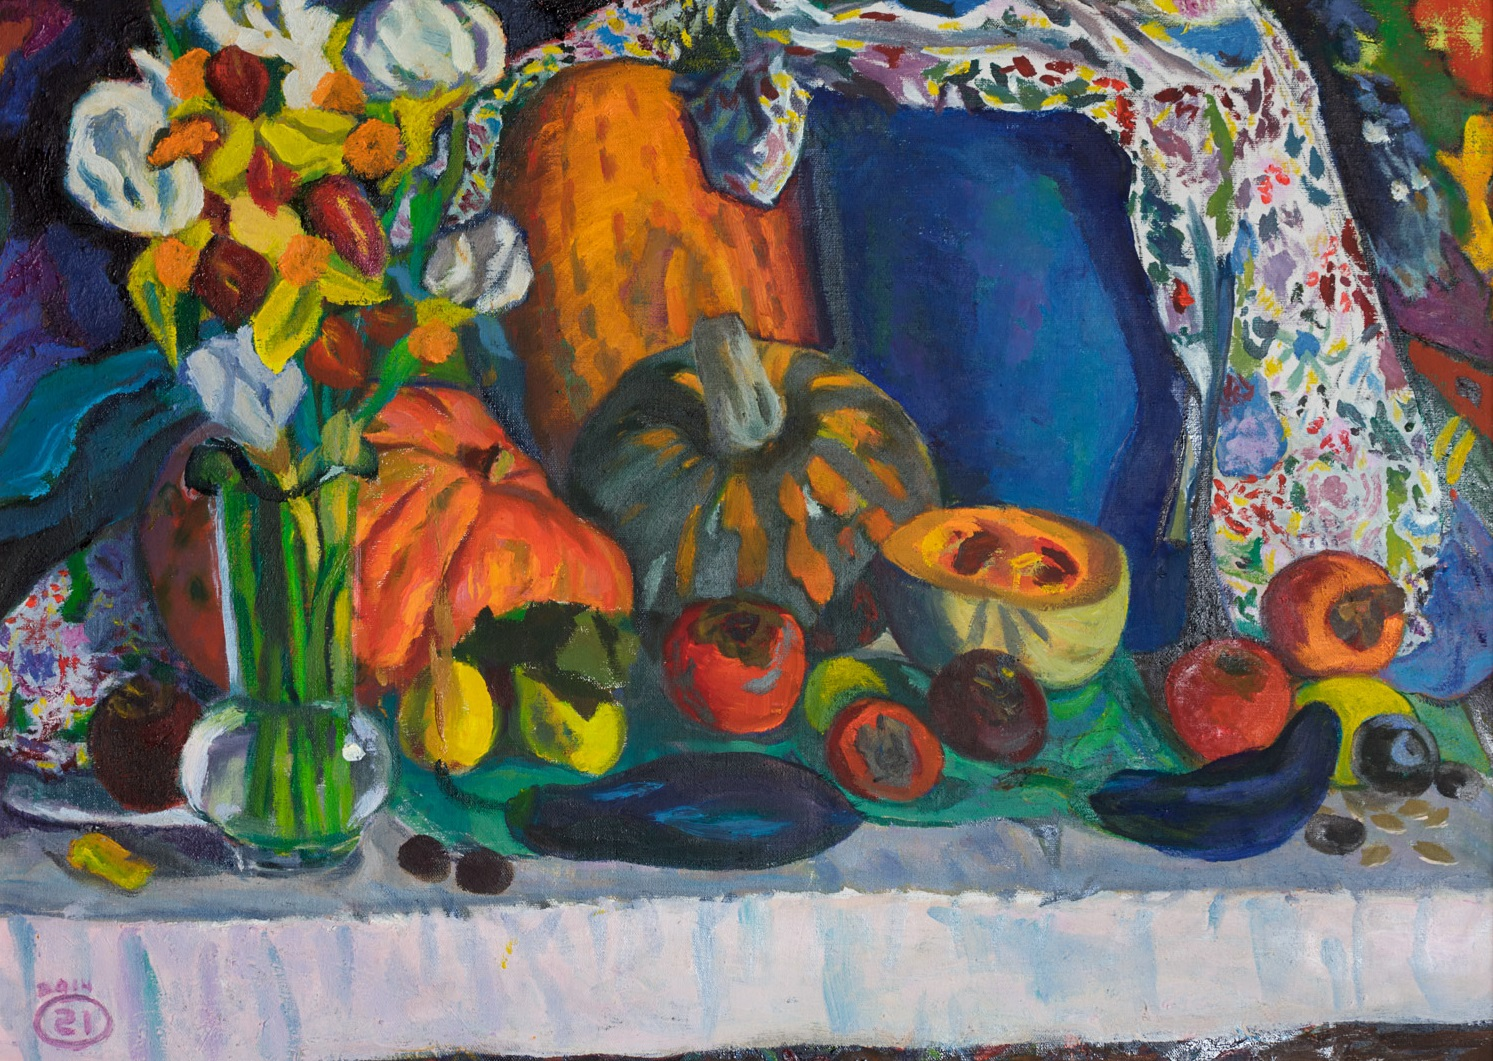 Moesey Li; Fruits And Vegetables, 2014, Original Painting Oil, 70 x 50 cm. Artwork description: 241 realism, still life, aubergine, pumpkin, flowers, persimmon...